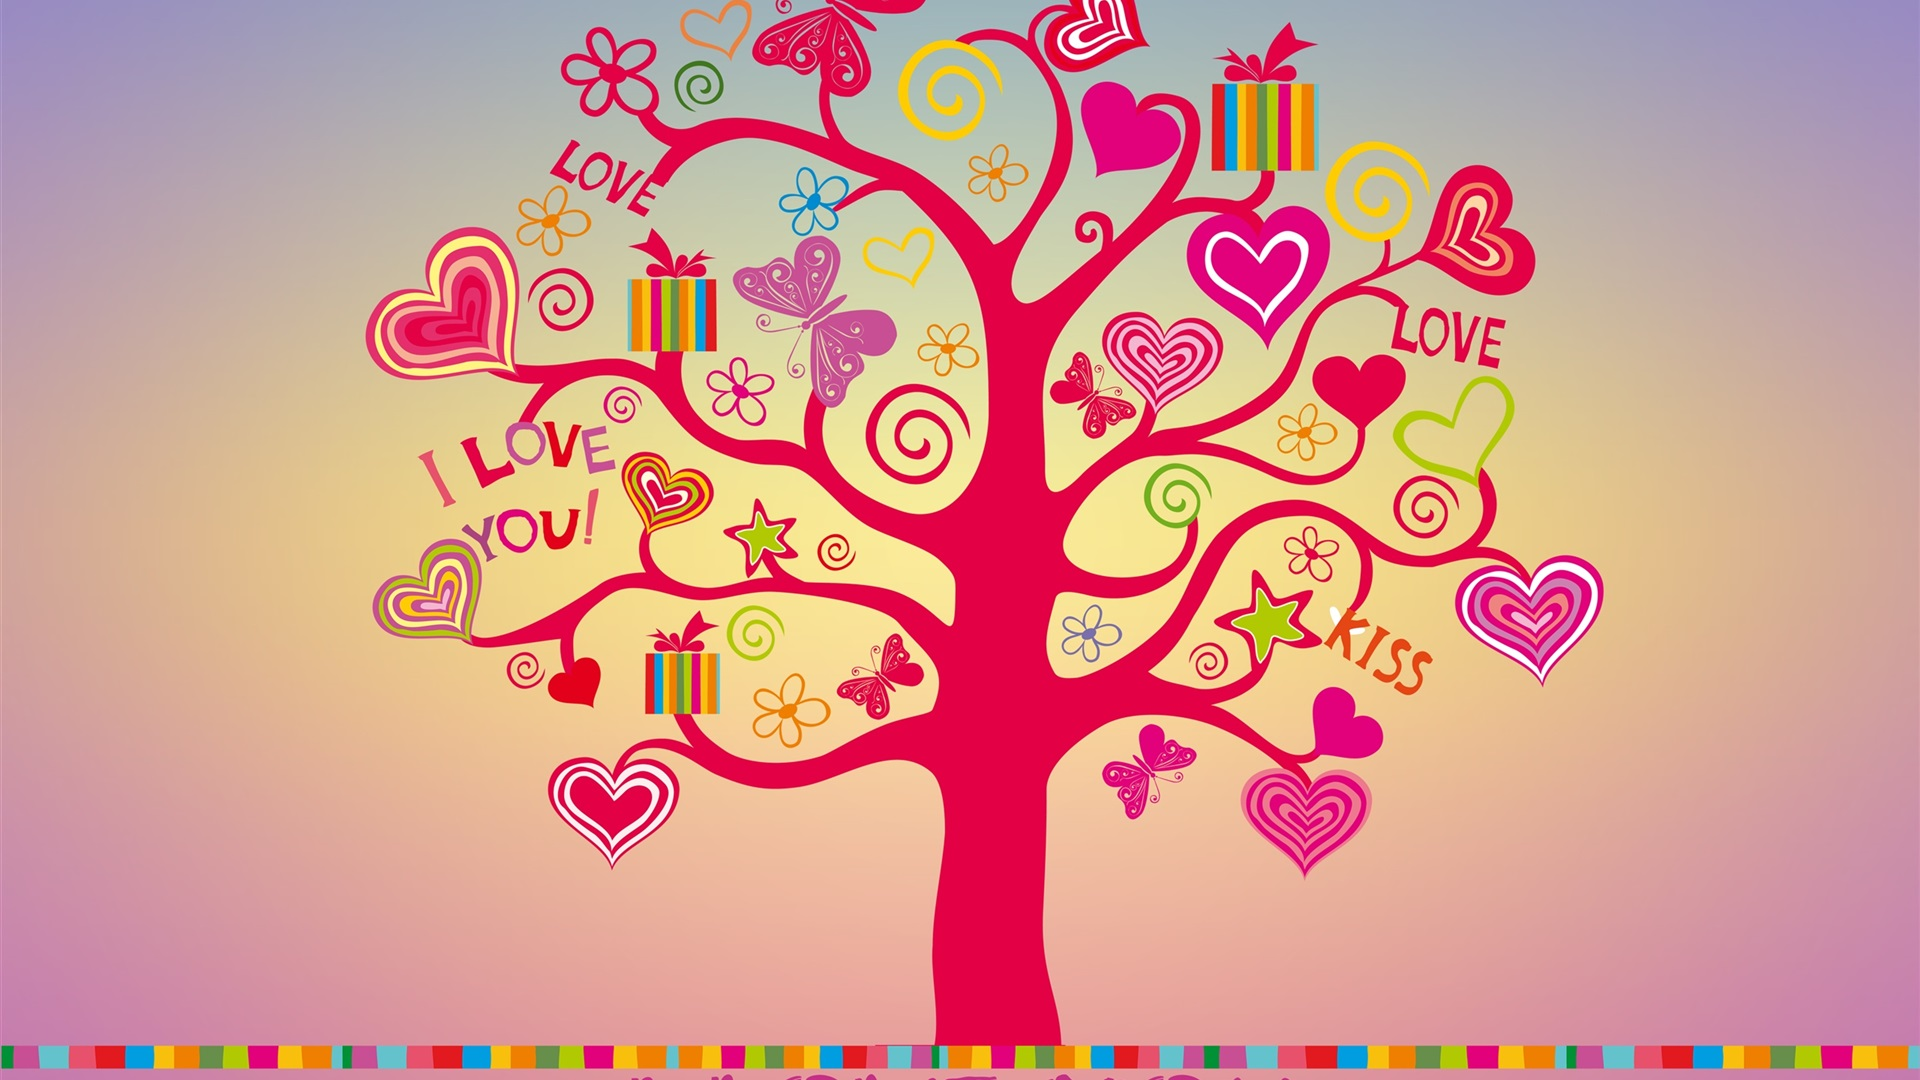 Love Tree Wallpapers : Download Wallpaper 1920x1080 I love you, love tree, hearts Full HD Background